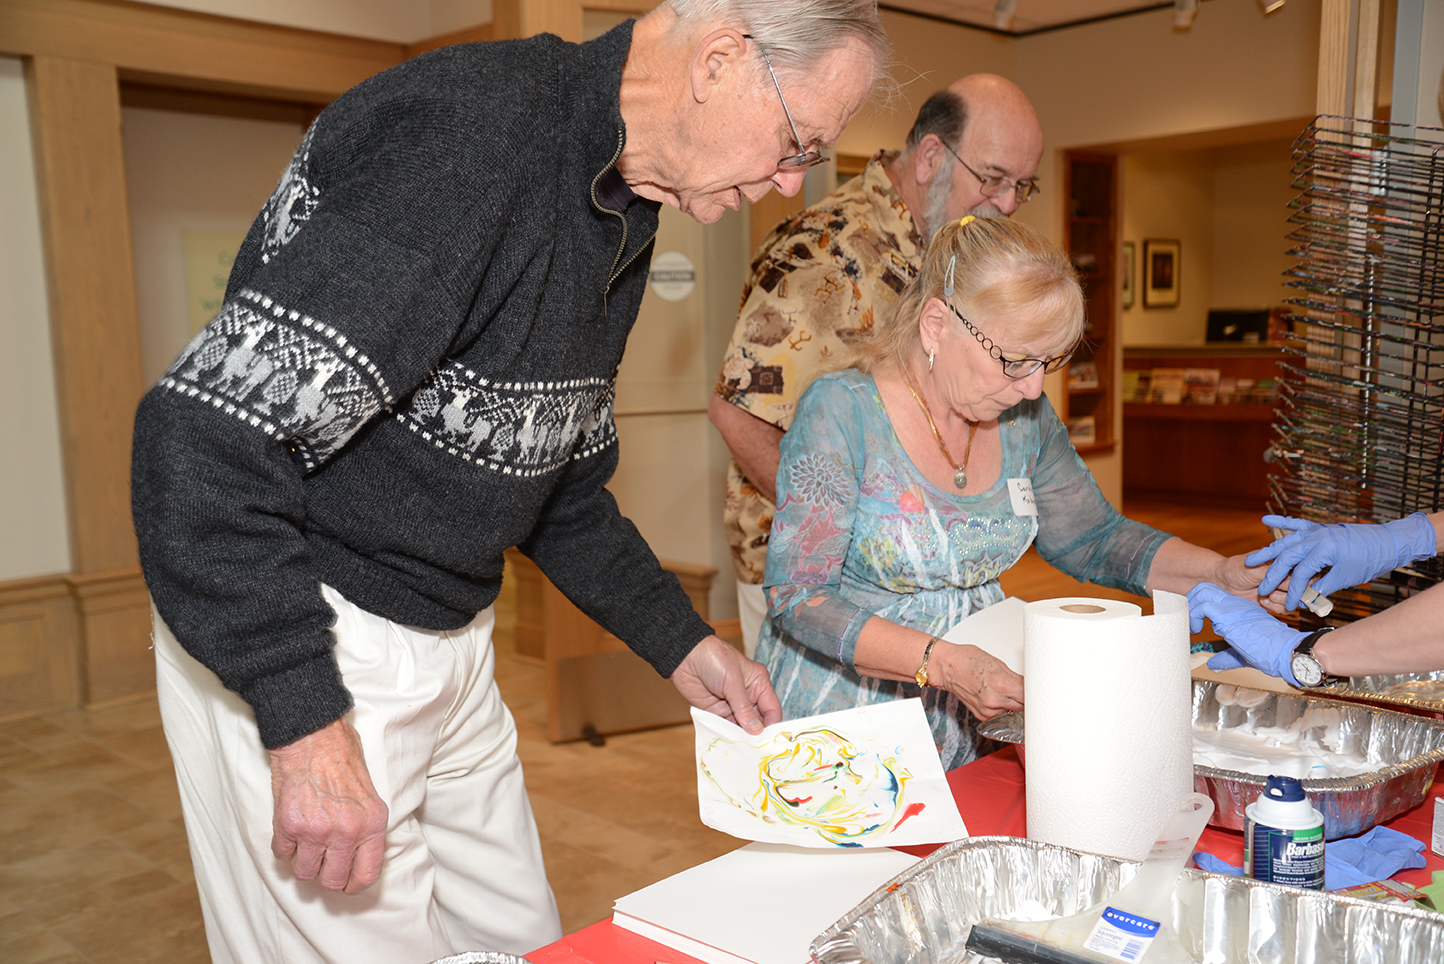 Adults review results of shaving cream printmaking